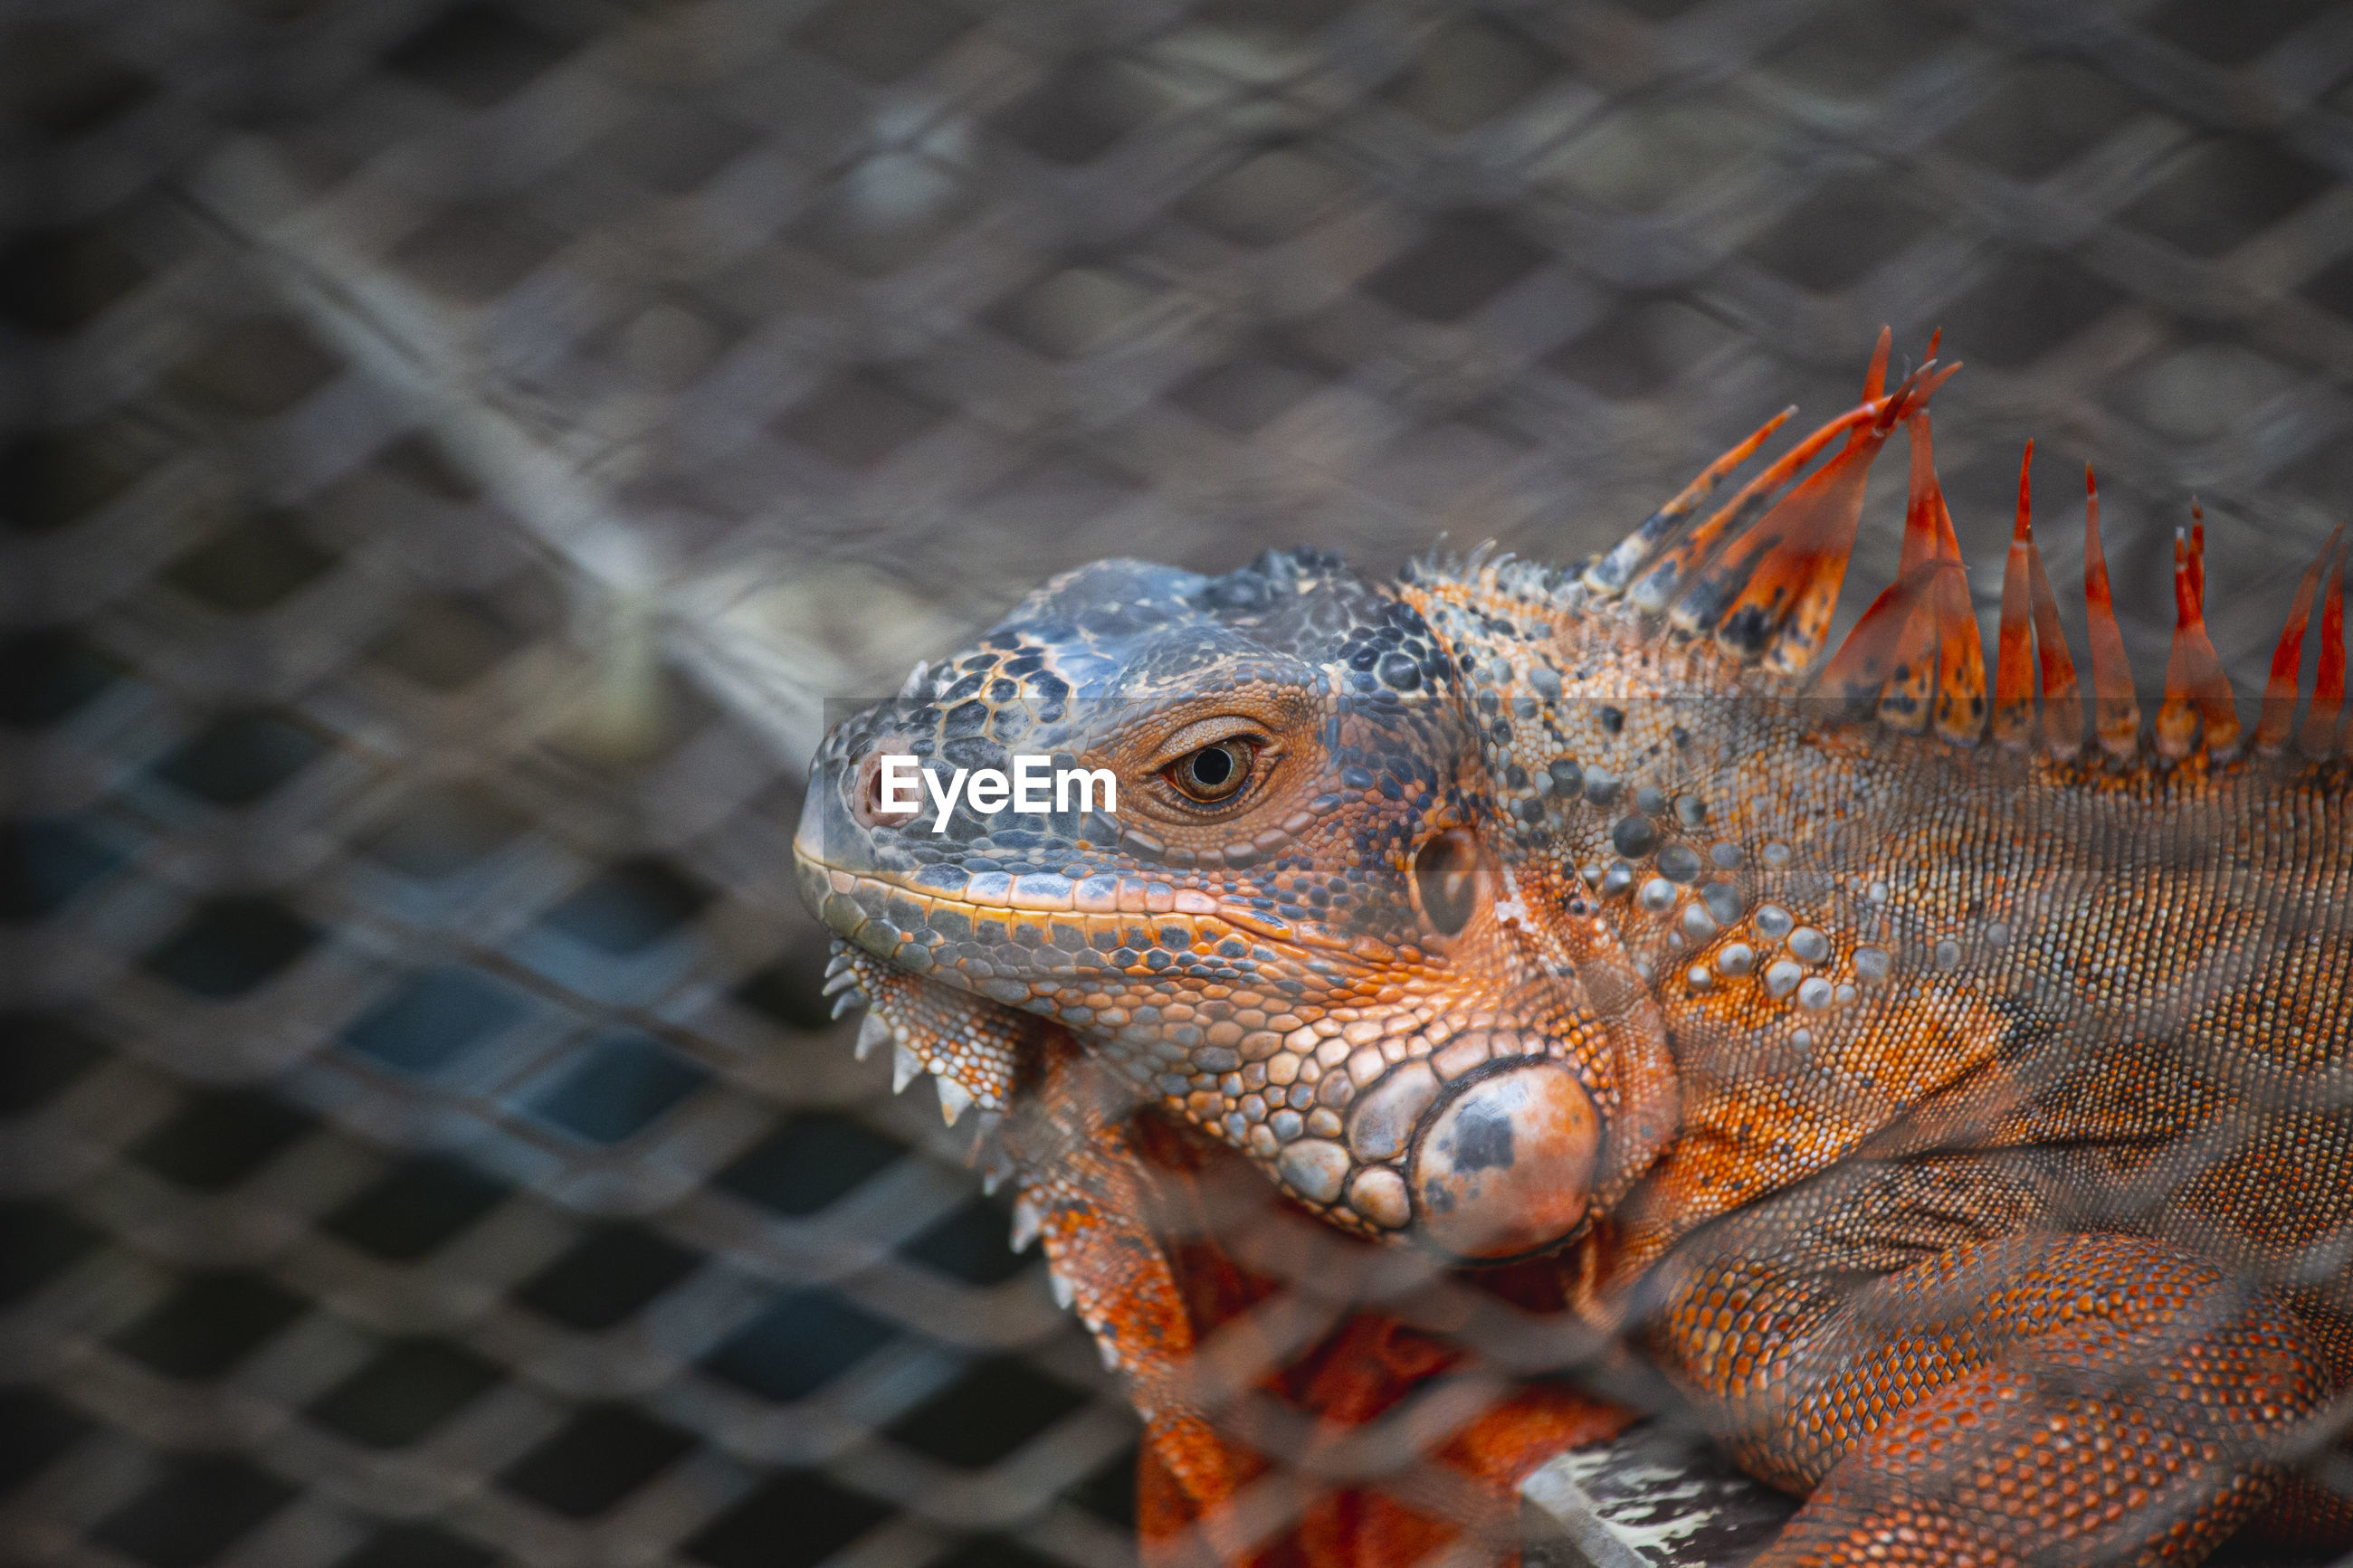 Close-up of lizard in cage